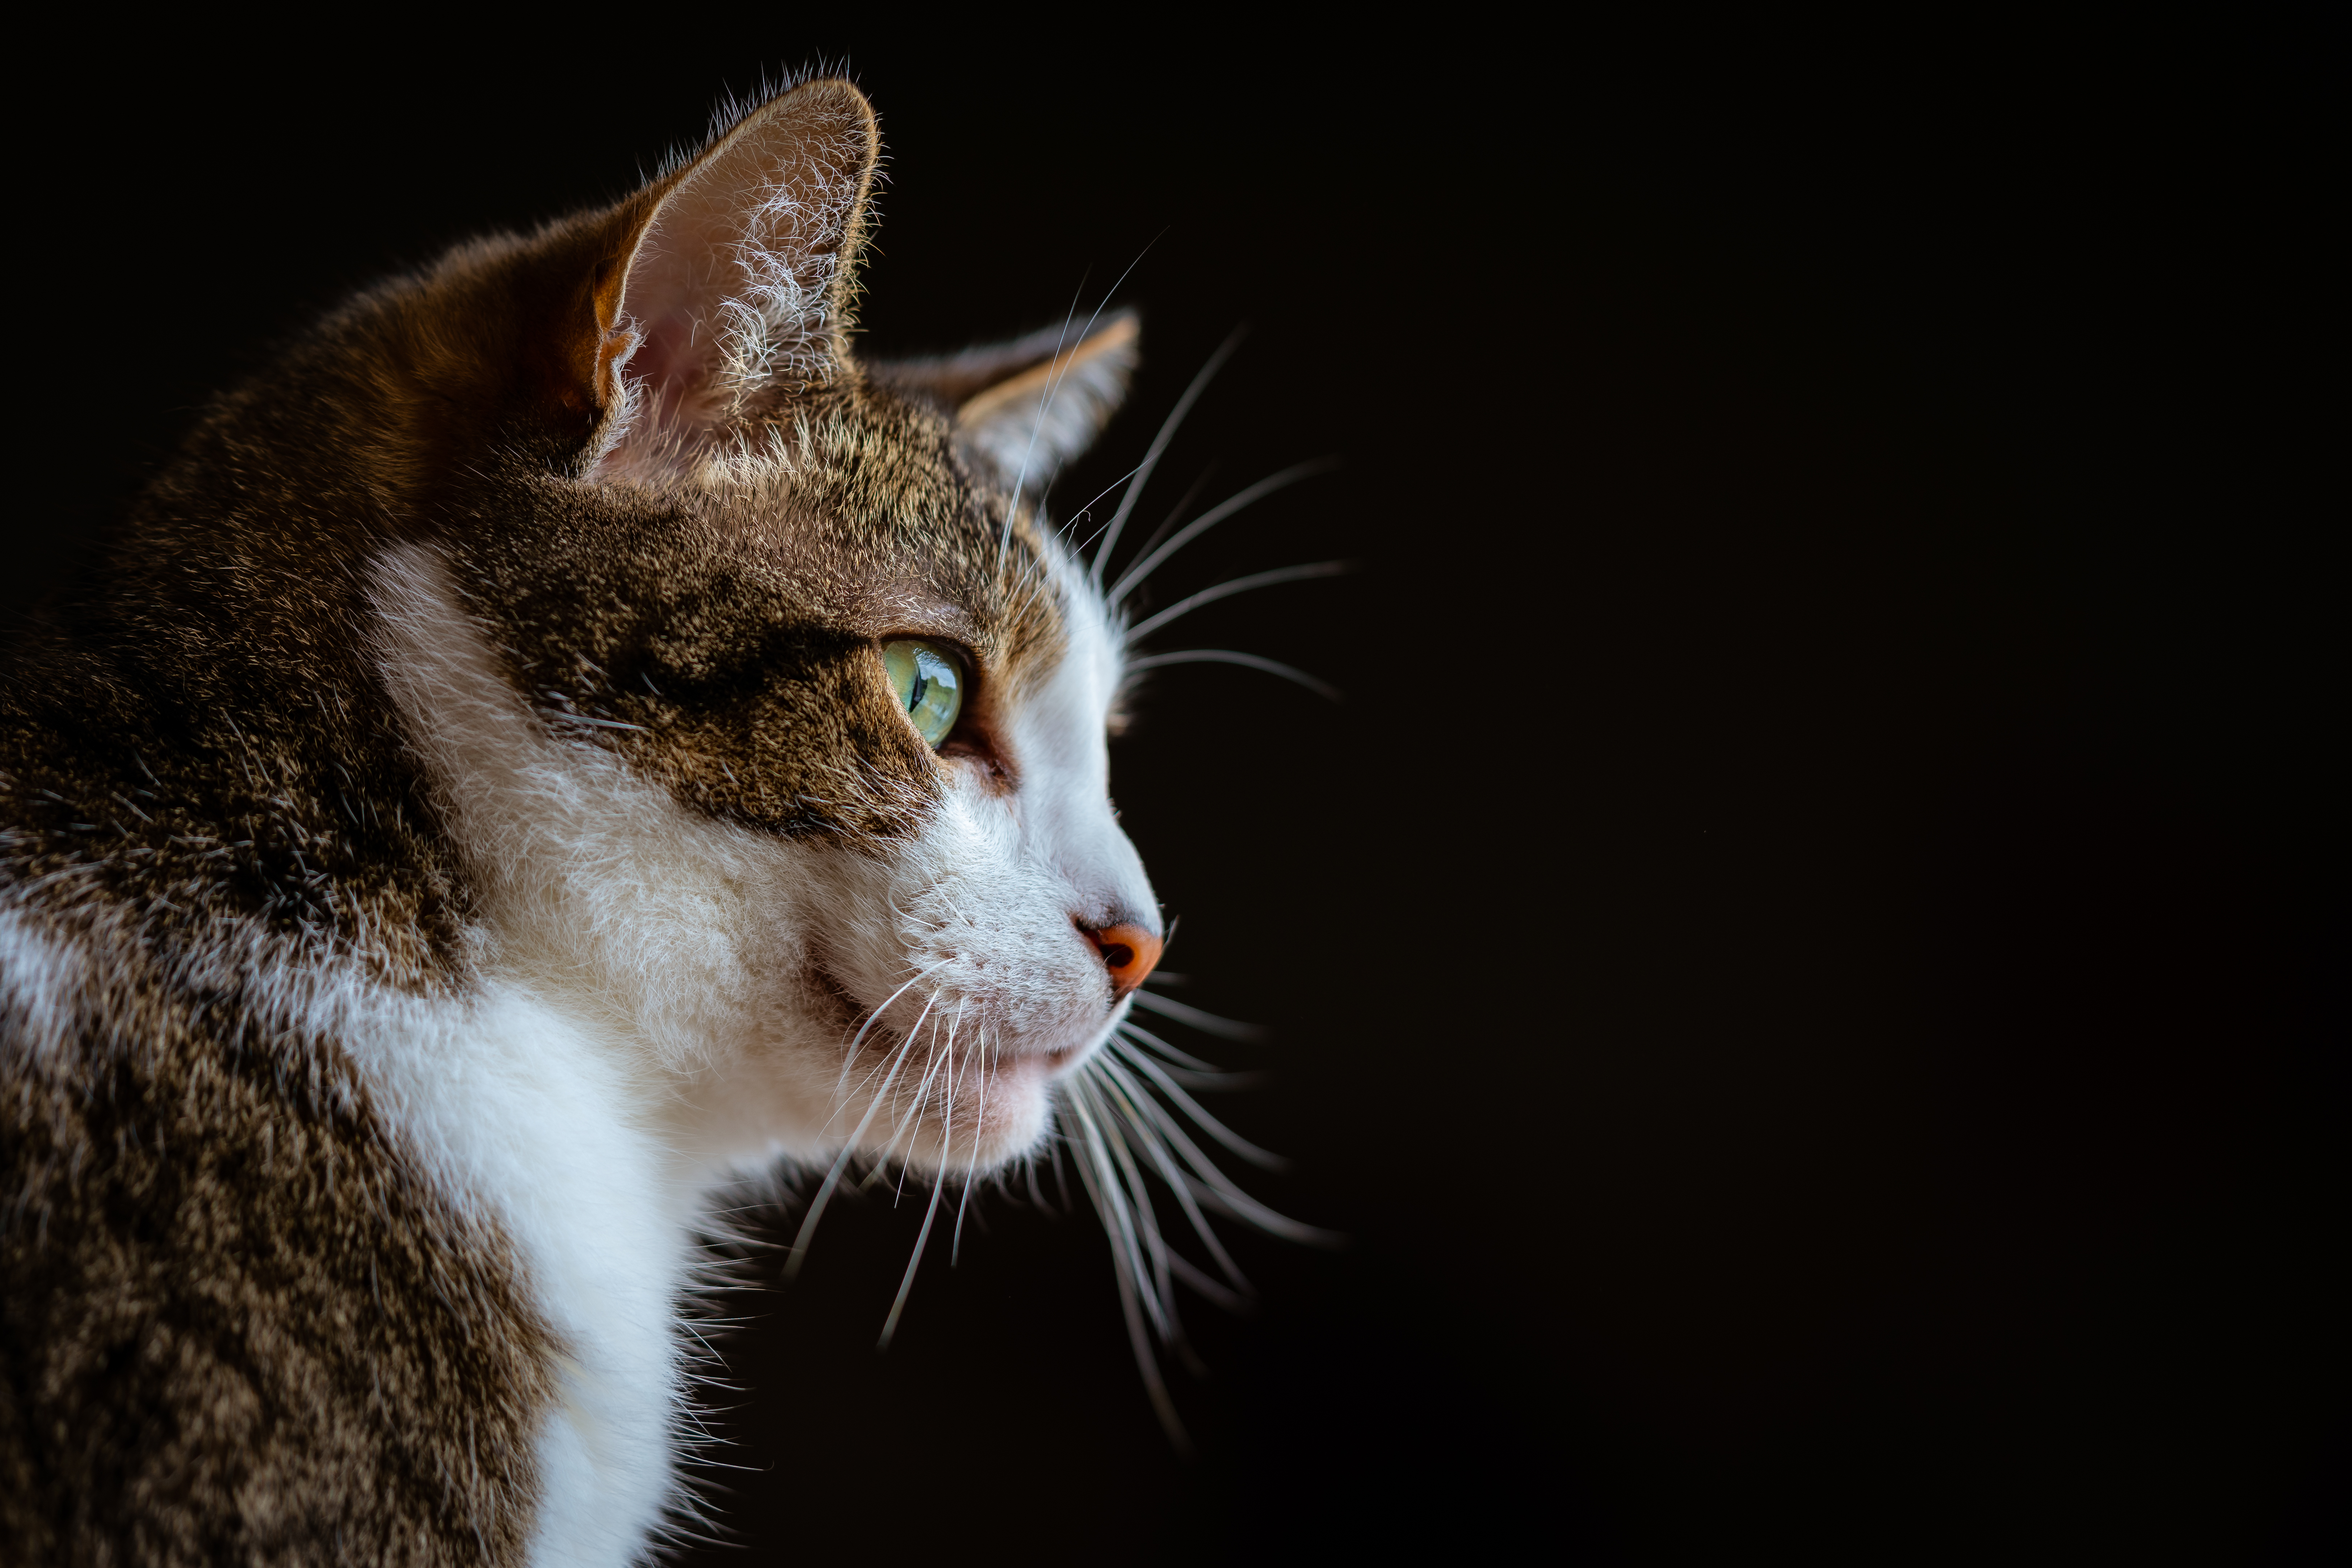 66027 download wallpaper Animals, Cat, Sight, Opinion, Muzzle, Animal, Pet screensavers and pictures for free